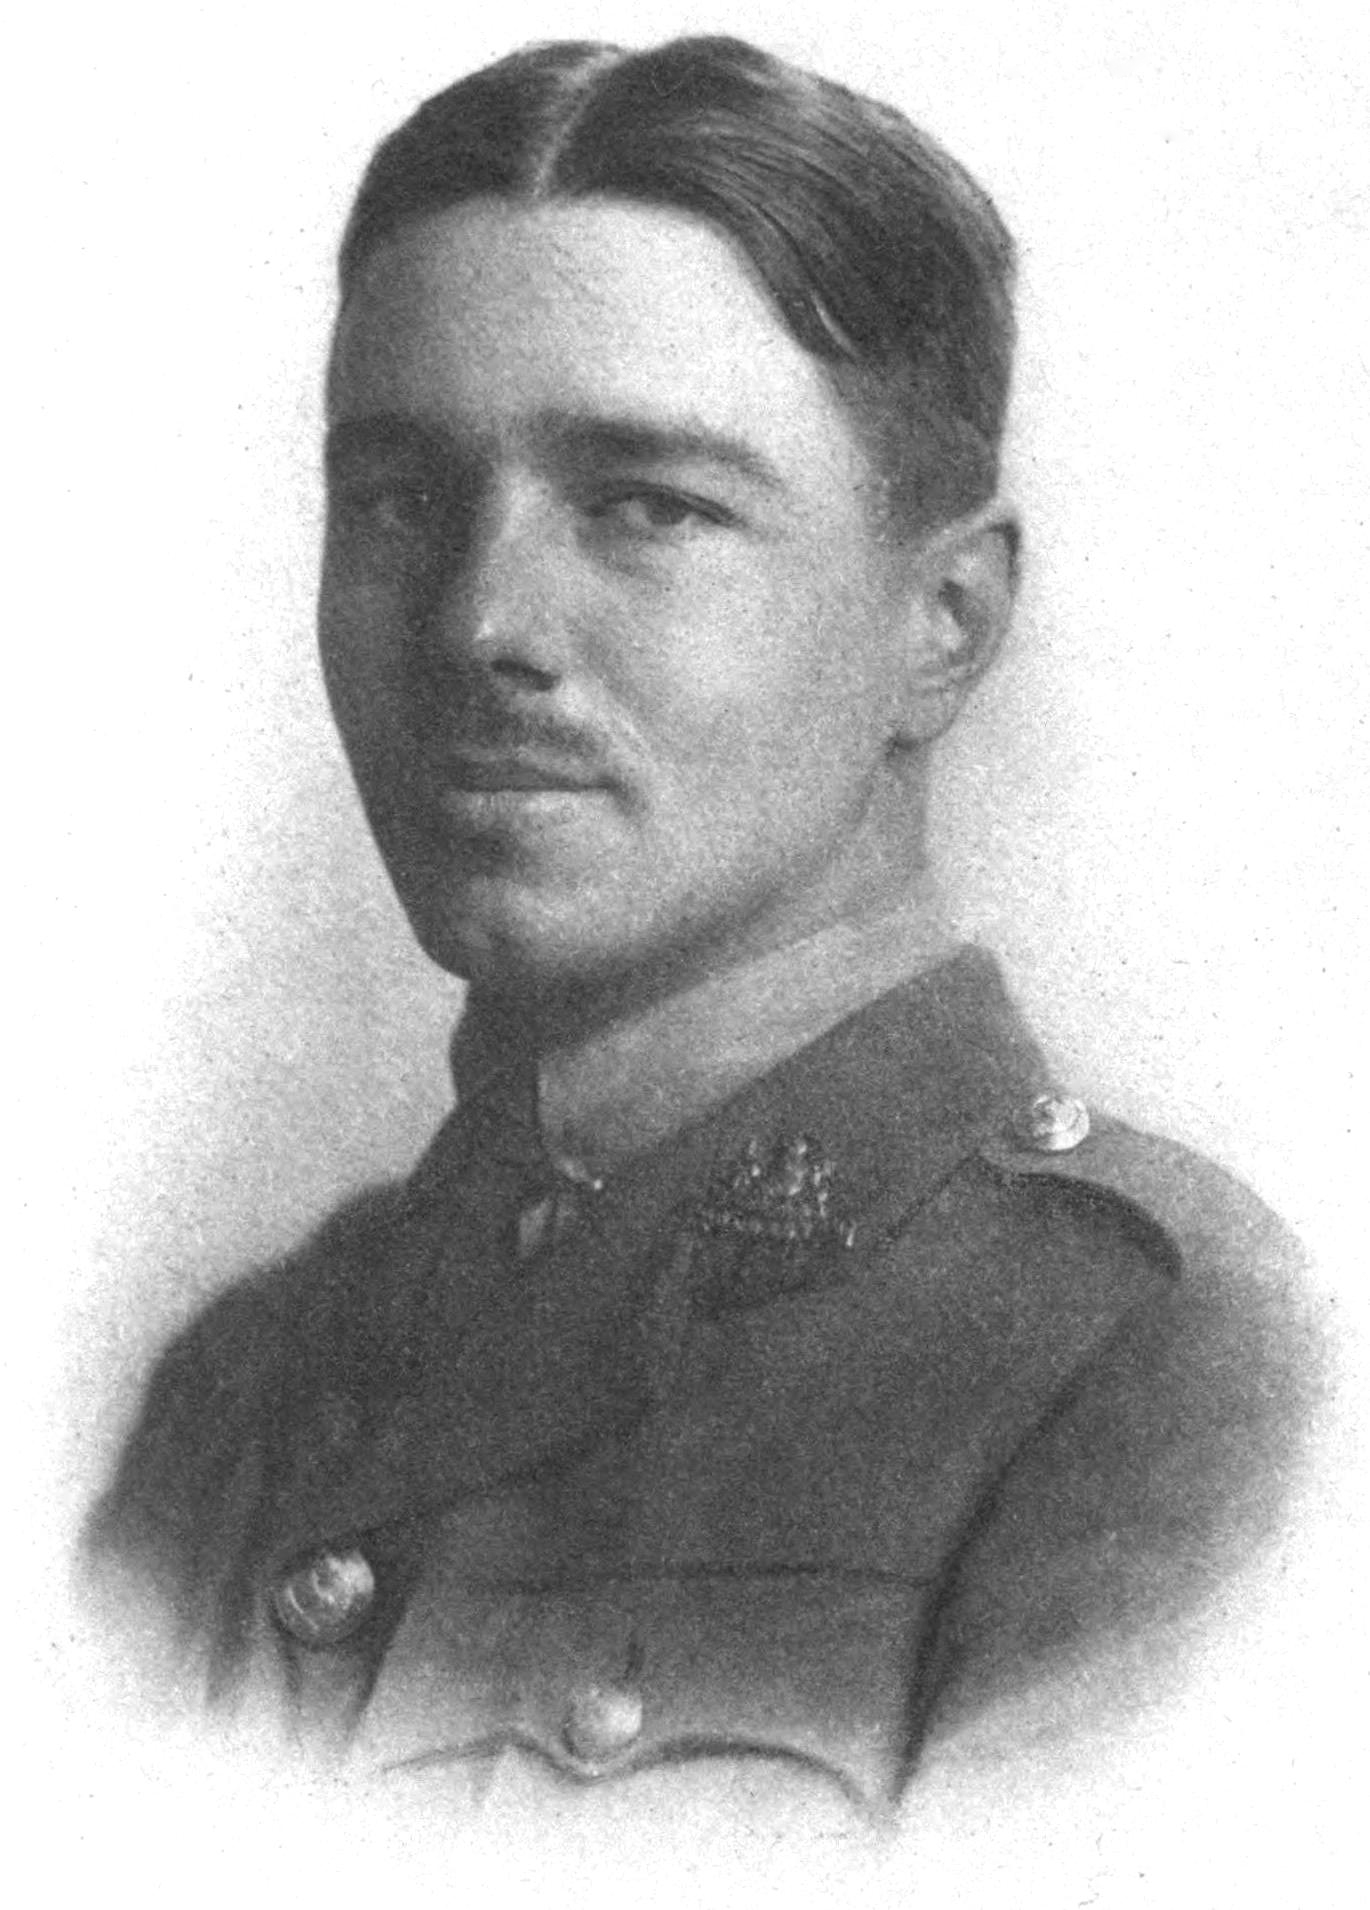 https://i0.wp.com/upload.wikimedia.org/wikipedia/commons/e/e3/Wilfred_Owen_plate_from_Poems_%281920%29.jpg